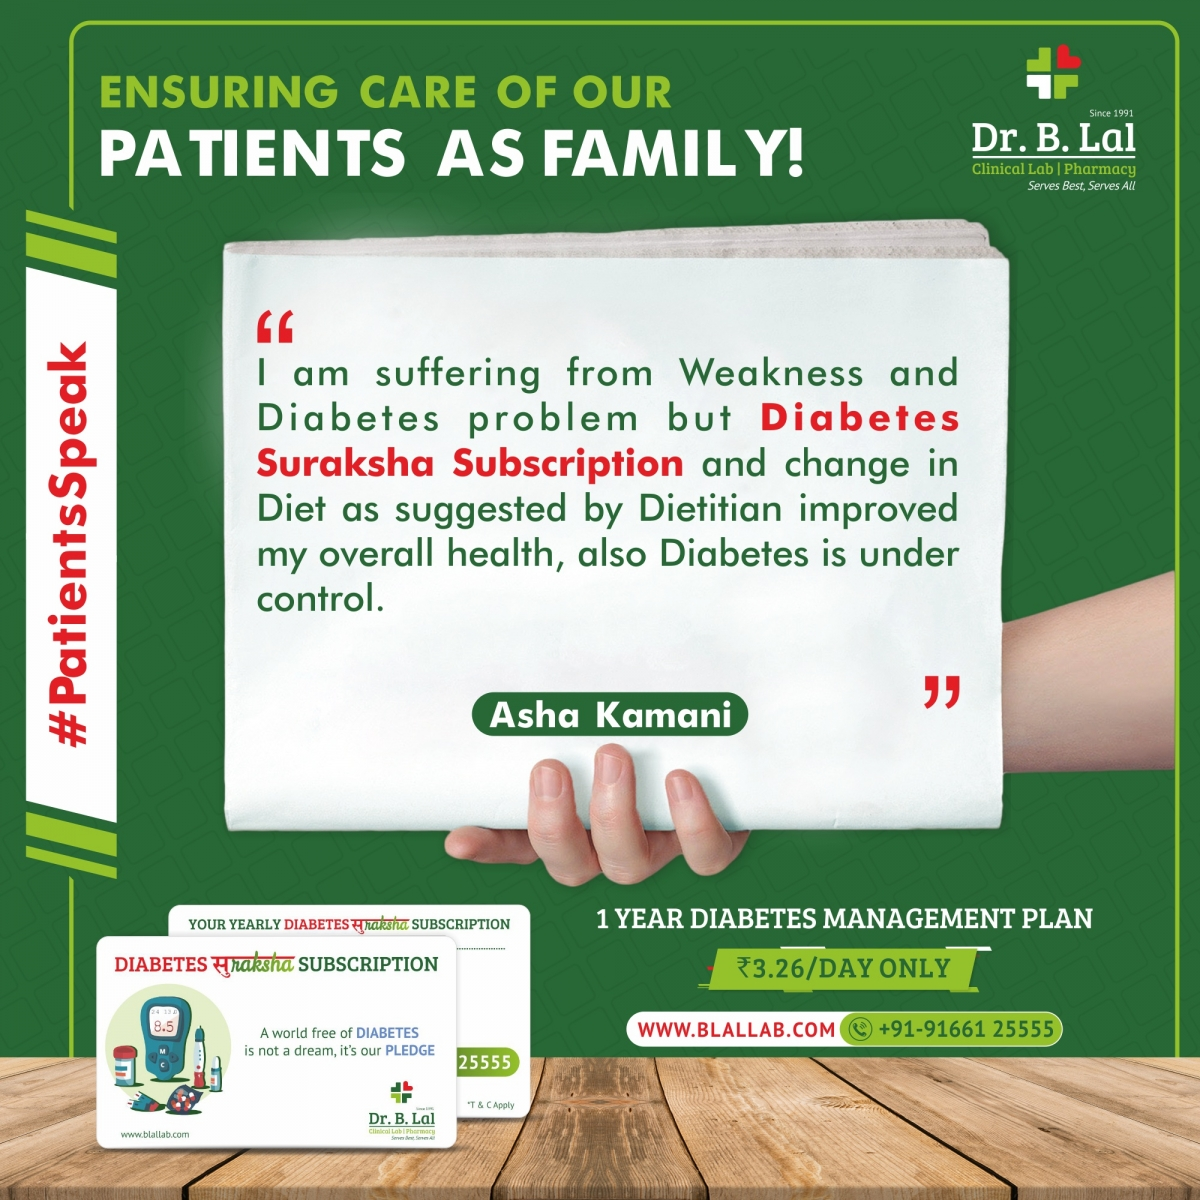 #PatientsSpeak | Diabetes Suraksha Subscription (A Complete Diabetes Care 1-Year Plan) in Jaipur, Rajasthan